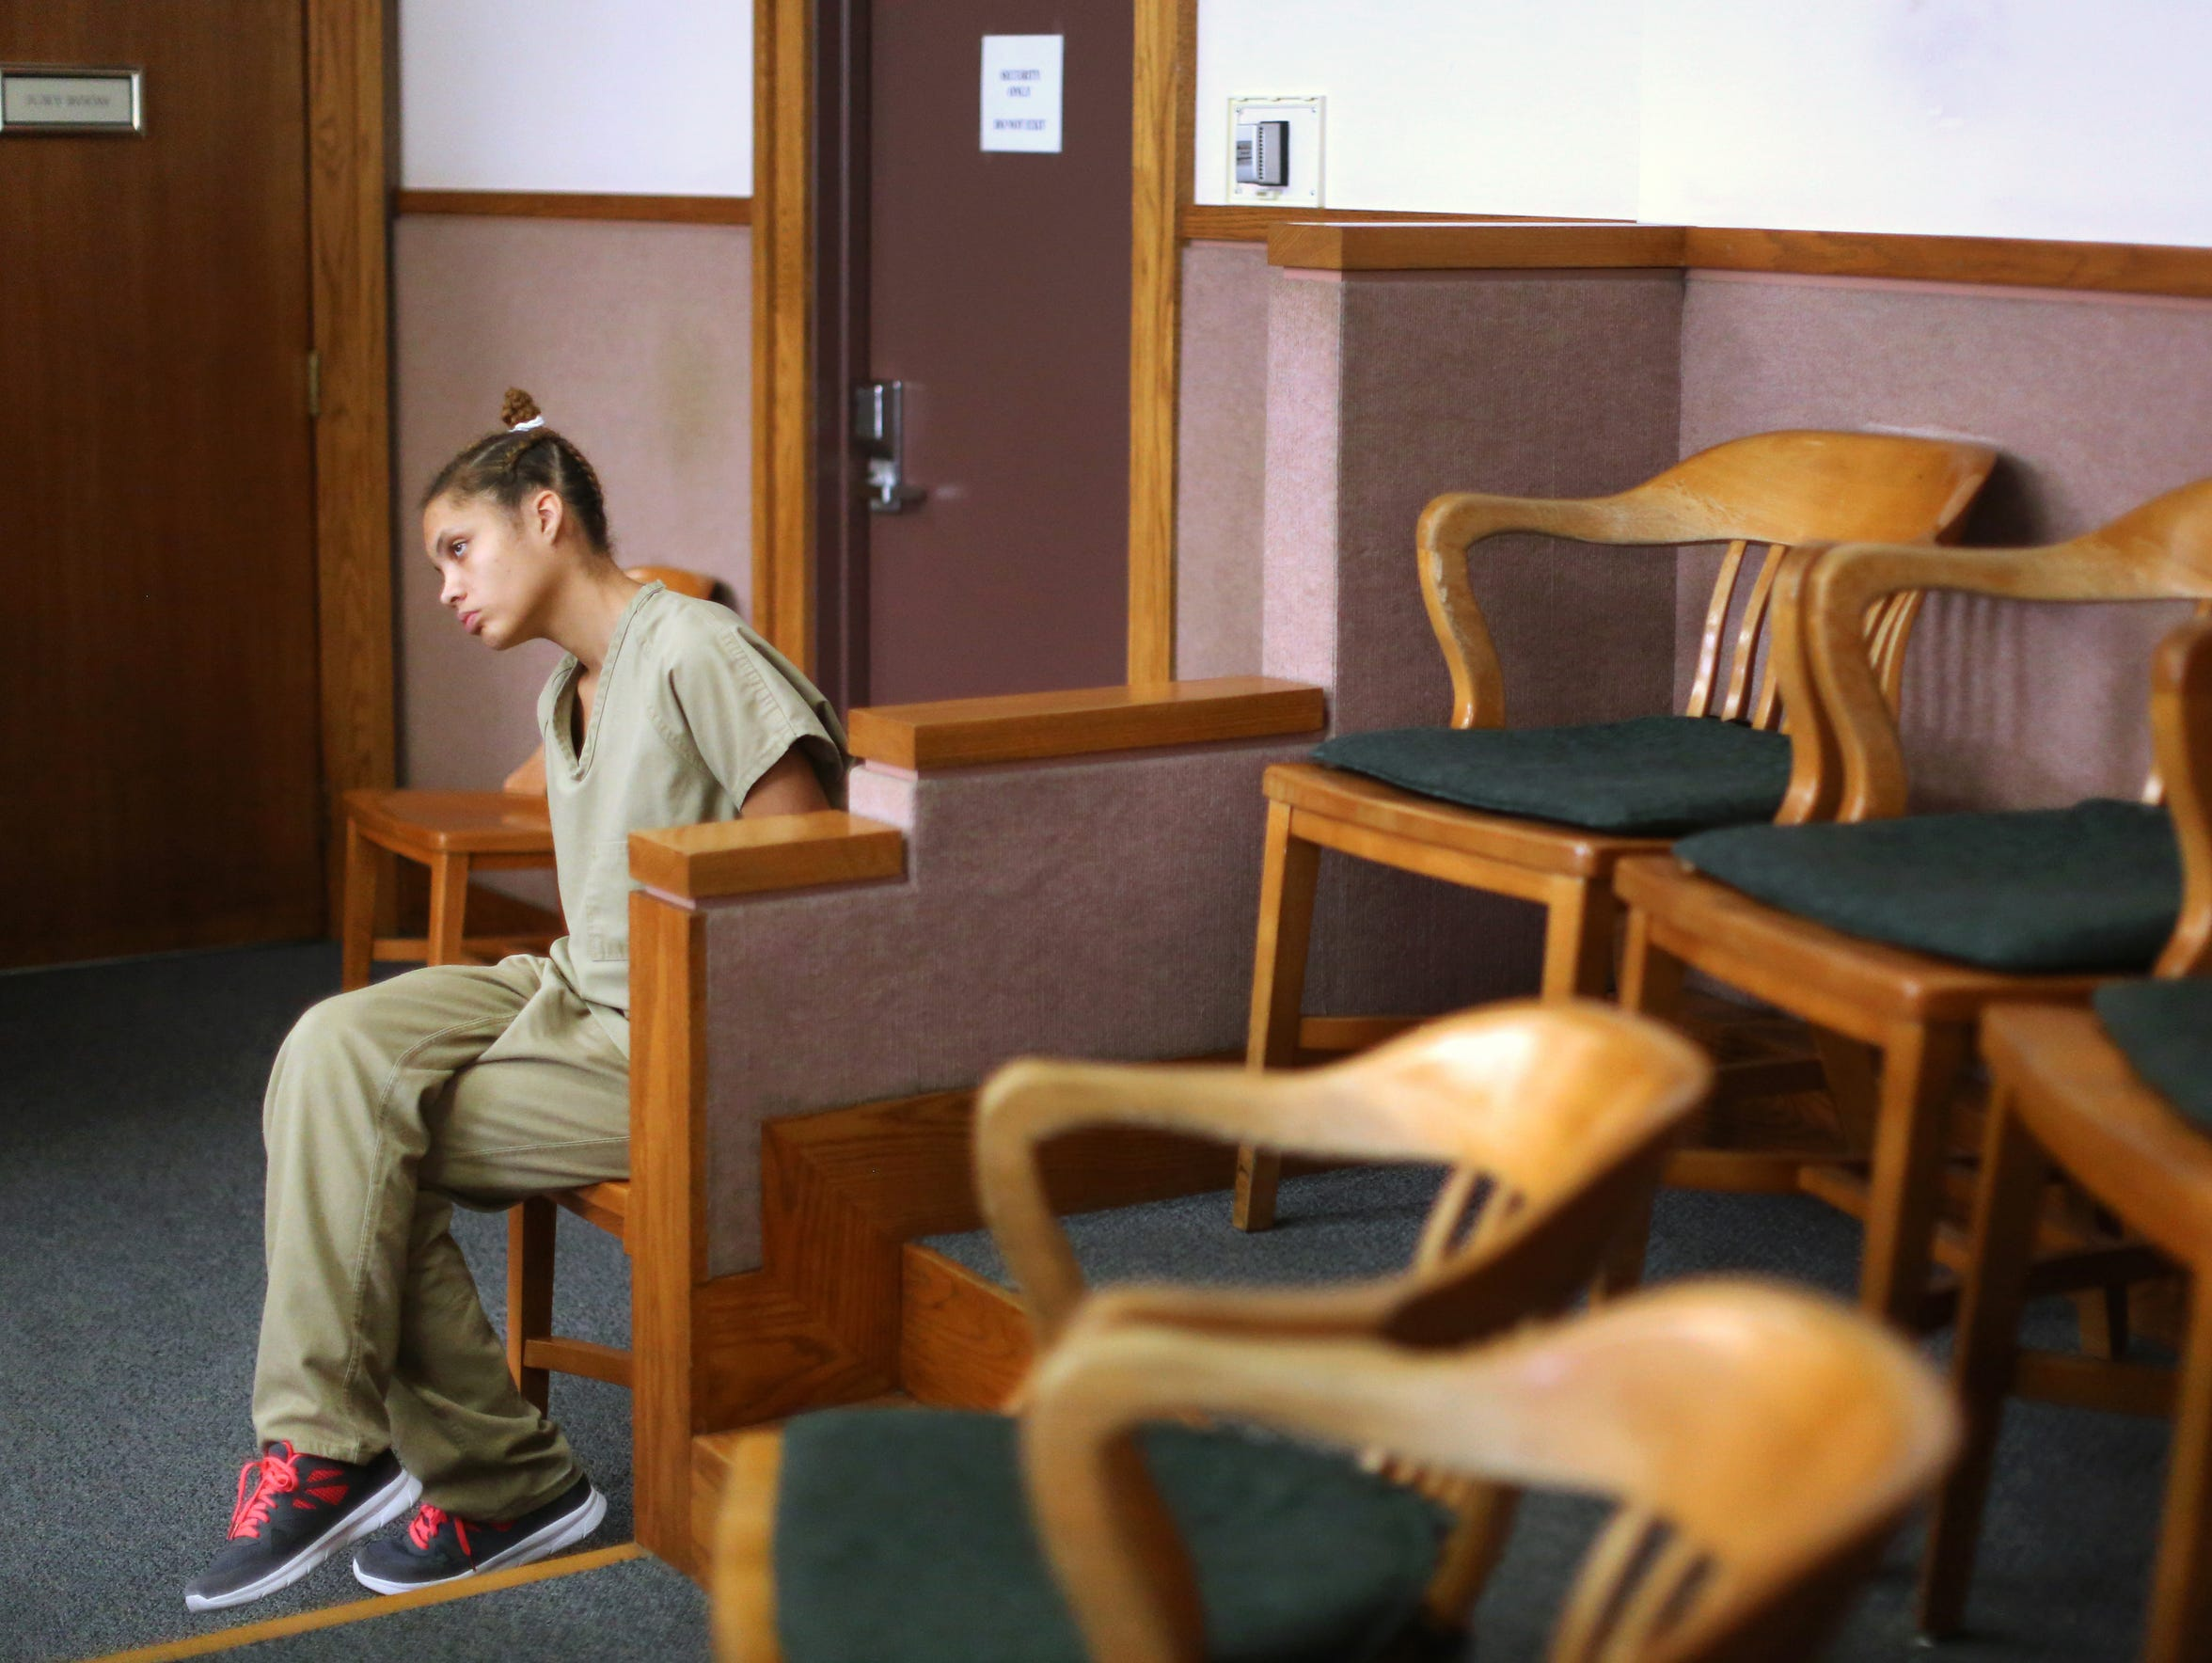 Dominique's first court appearance on the drug paraphernalia